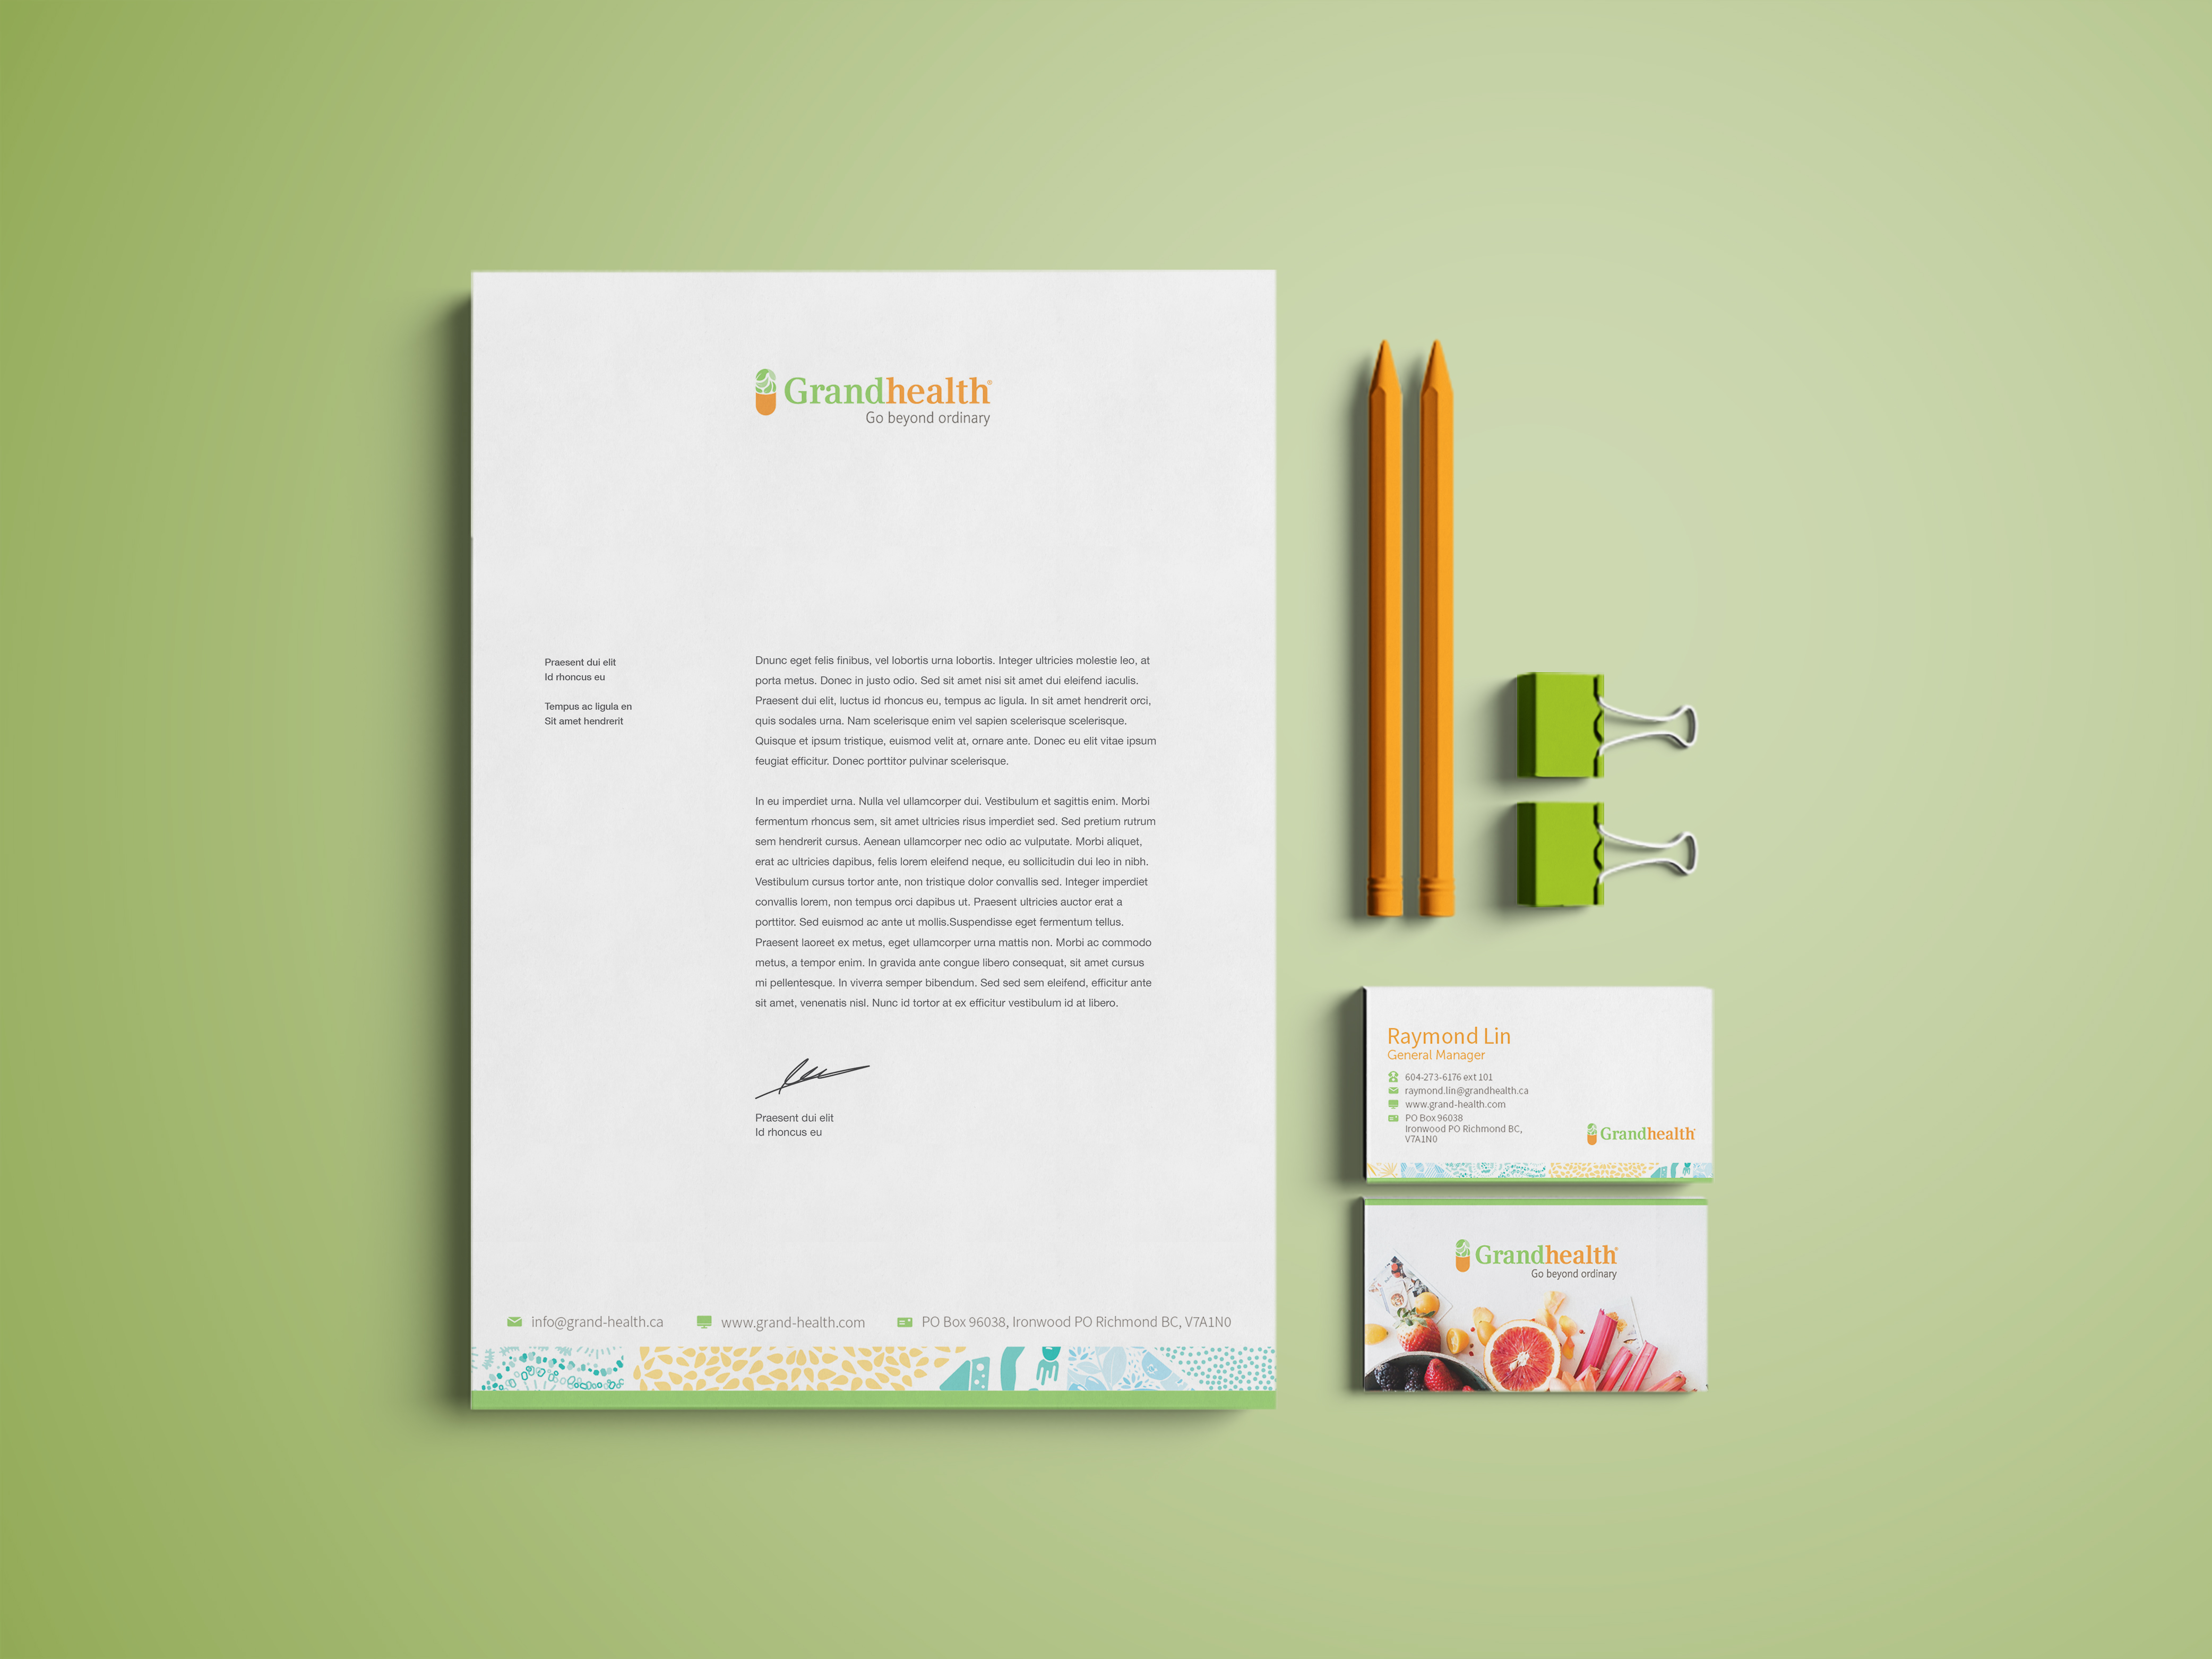 Grandhealth Stationery Design with Business Cards & Letterhead Designs